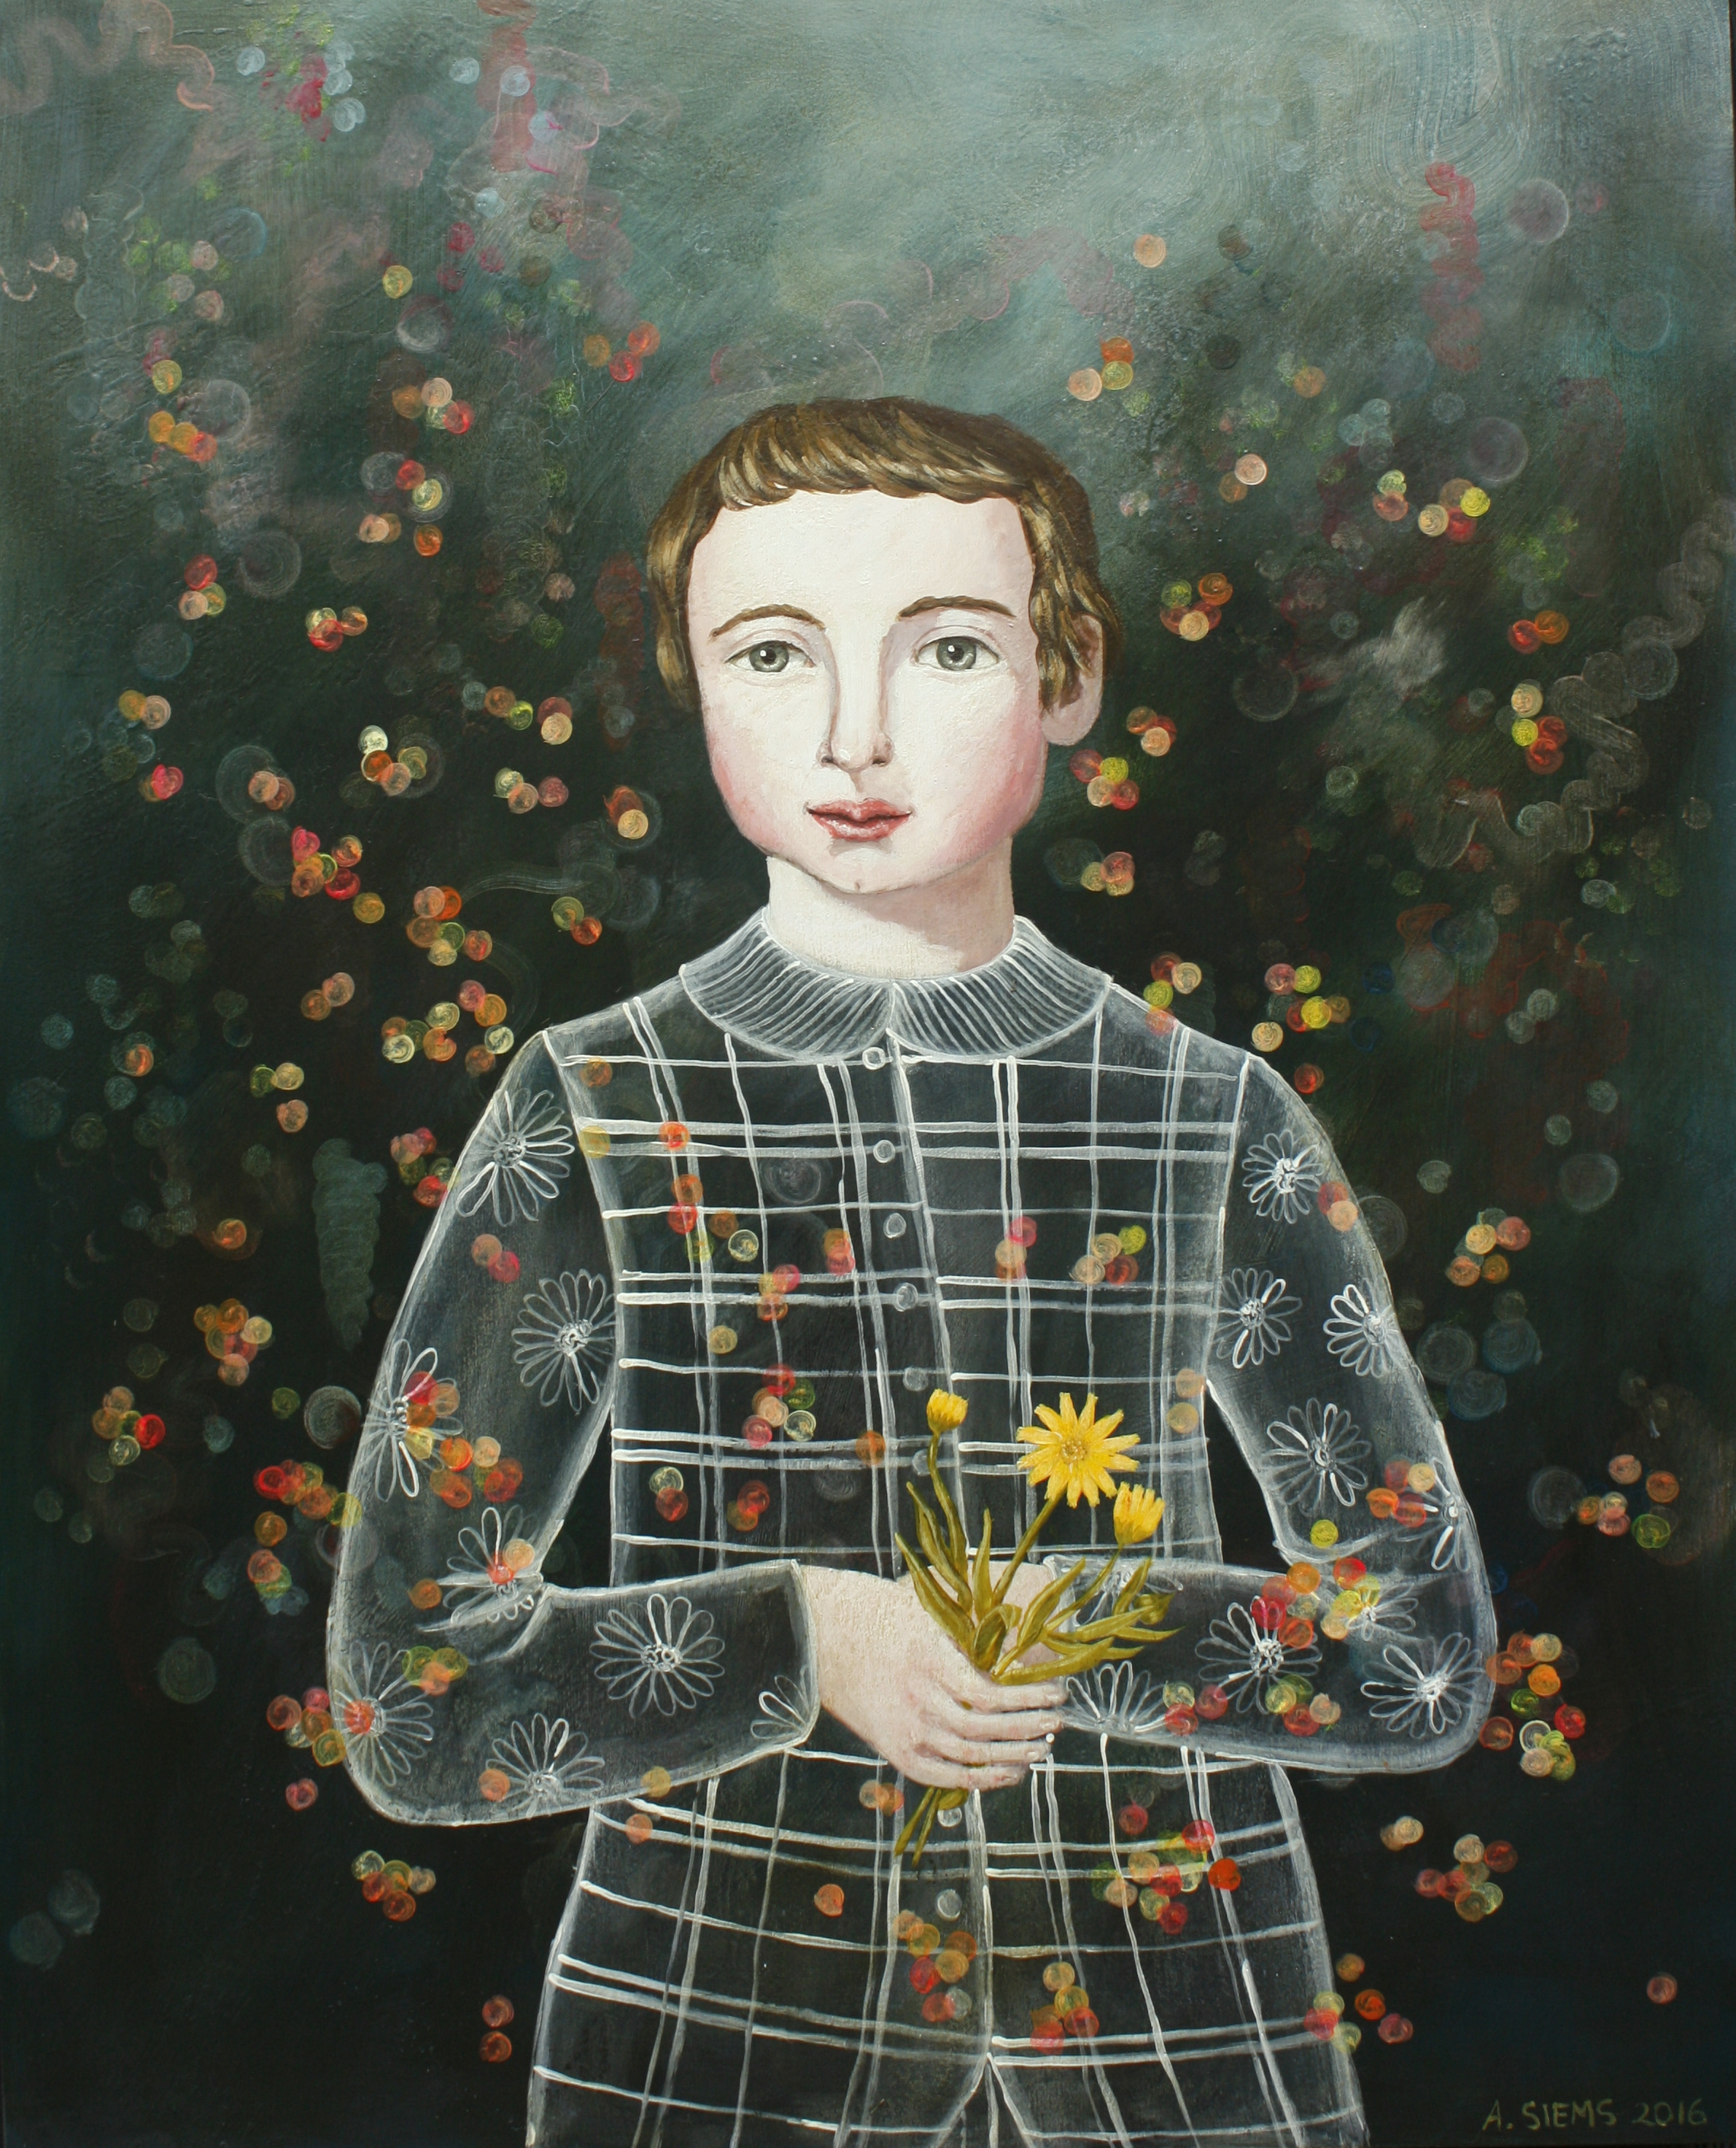 Anne Siems  - Boy with Calendula  Acrylic on wood panel - 2017 - 30x24 inch / 76x61 cm